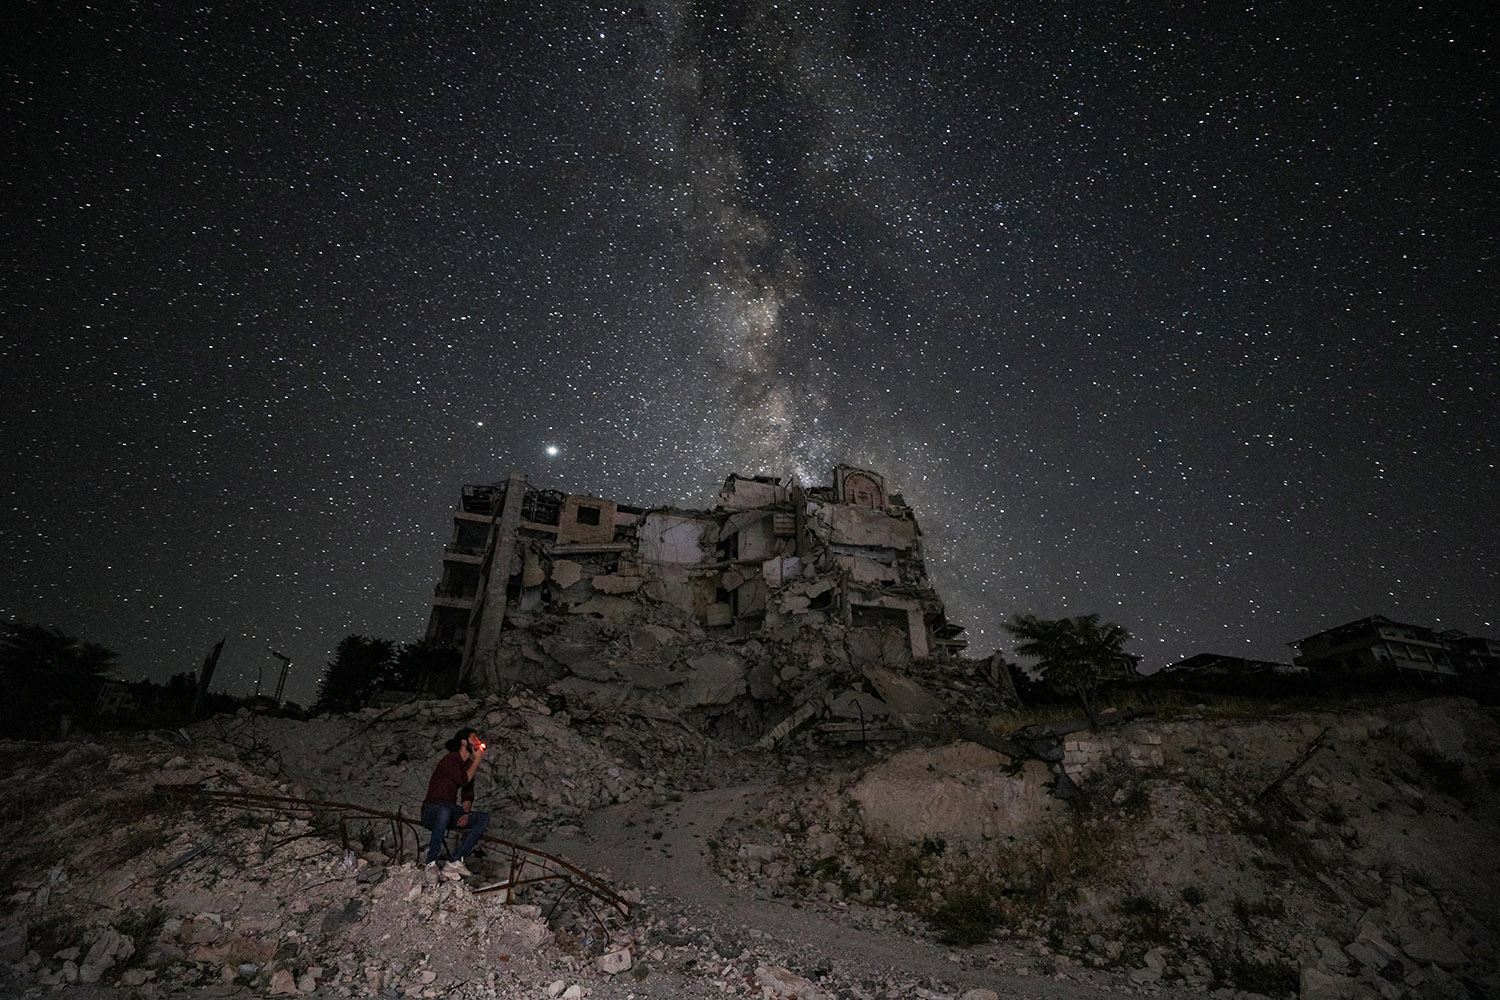 A man smokes near destroyed buildings in the town of Ariha in Syria's rebel-held northwestern Idlib province on June 27 in this long-exposure photograph that showcases the Milky Way galaxy in the night sky above. OMAR HAJ KADOUR/AFP via Getty Images